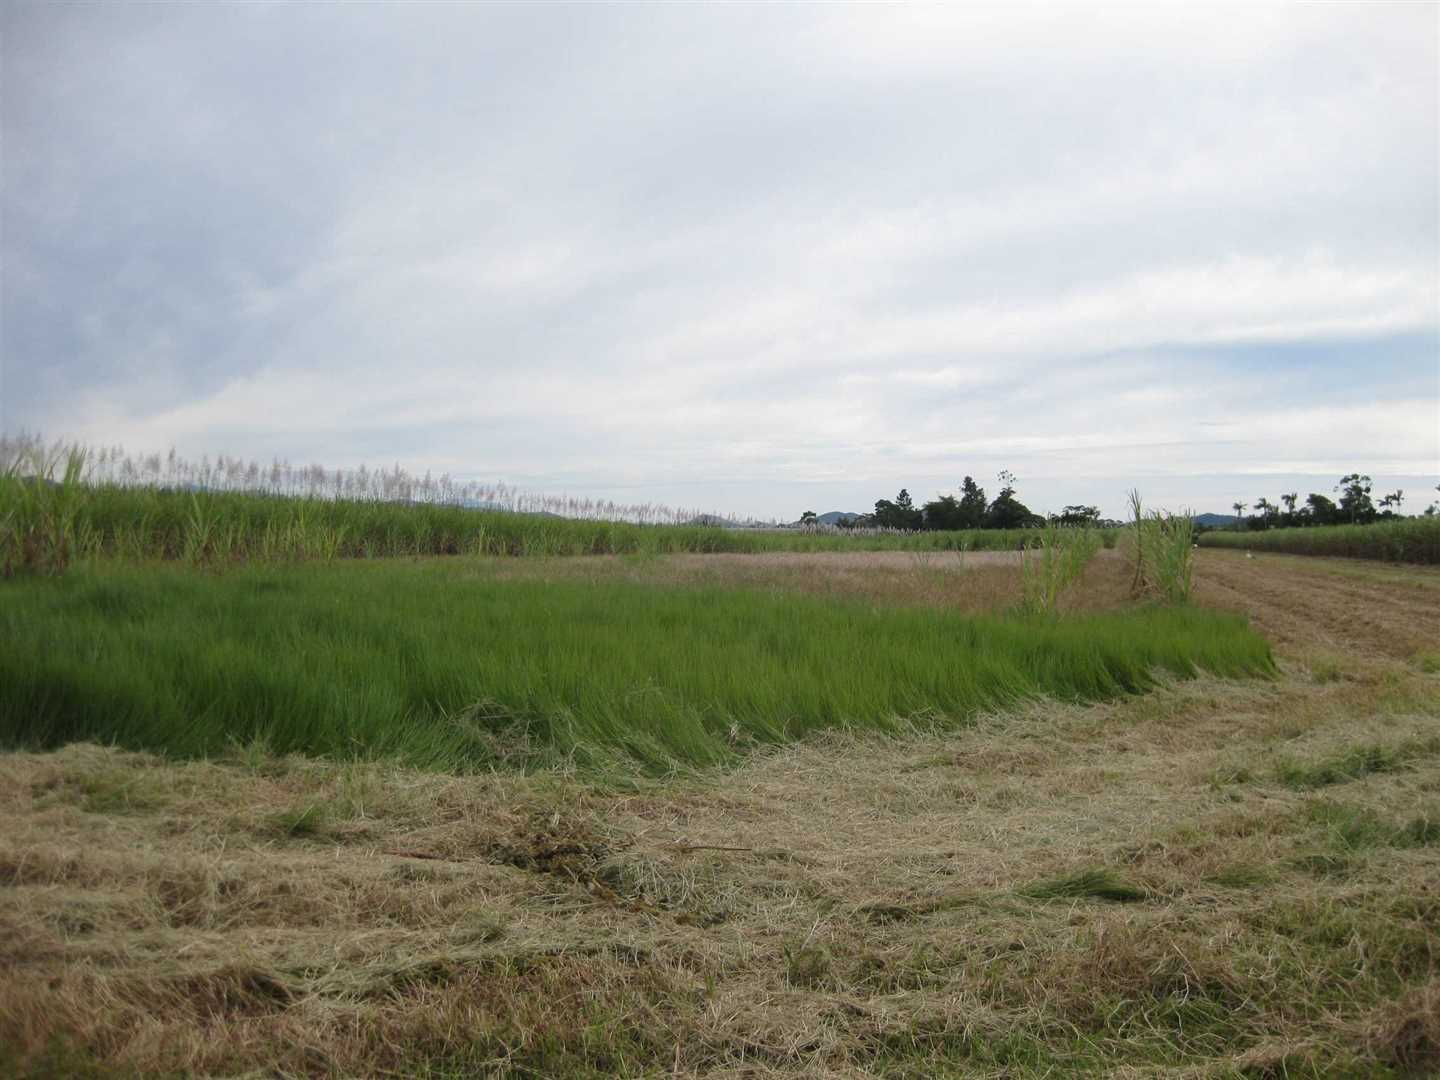 View of part of property, photo 3 (cane crop excluded)